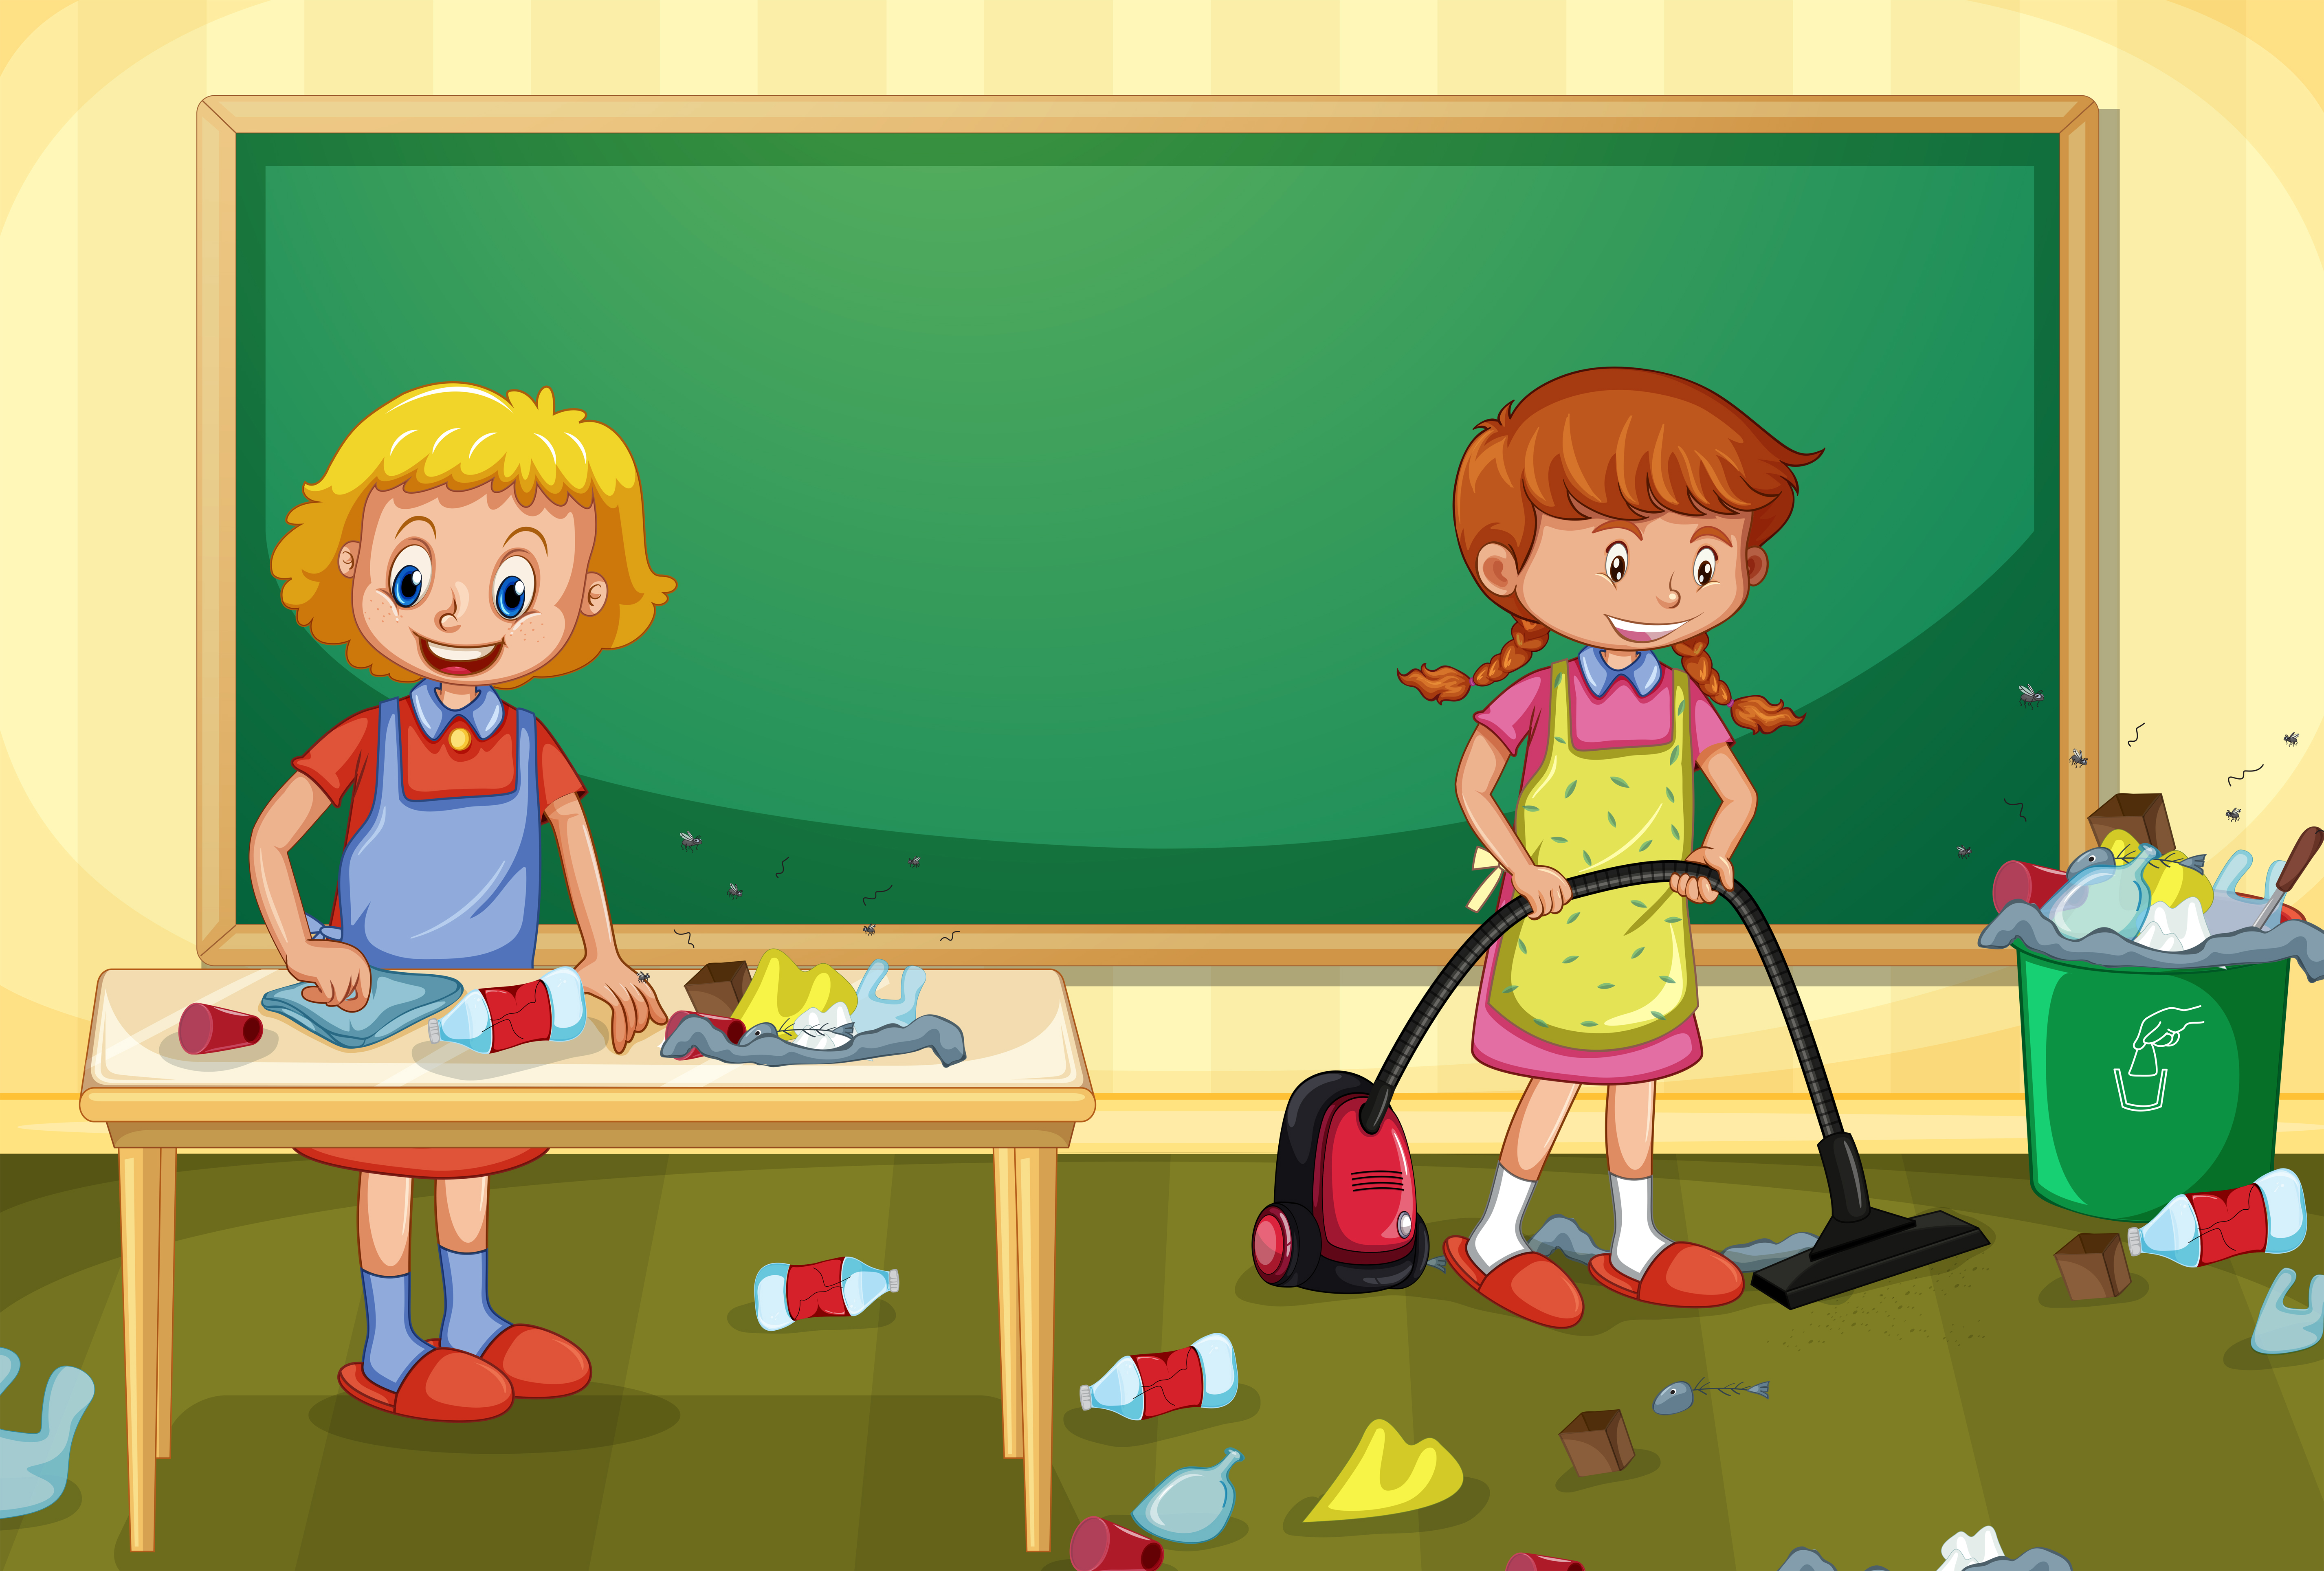 Maid Cleaning Dirty Classroom - Download Free Vectors ...